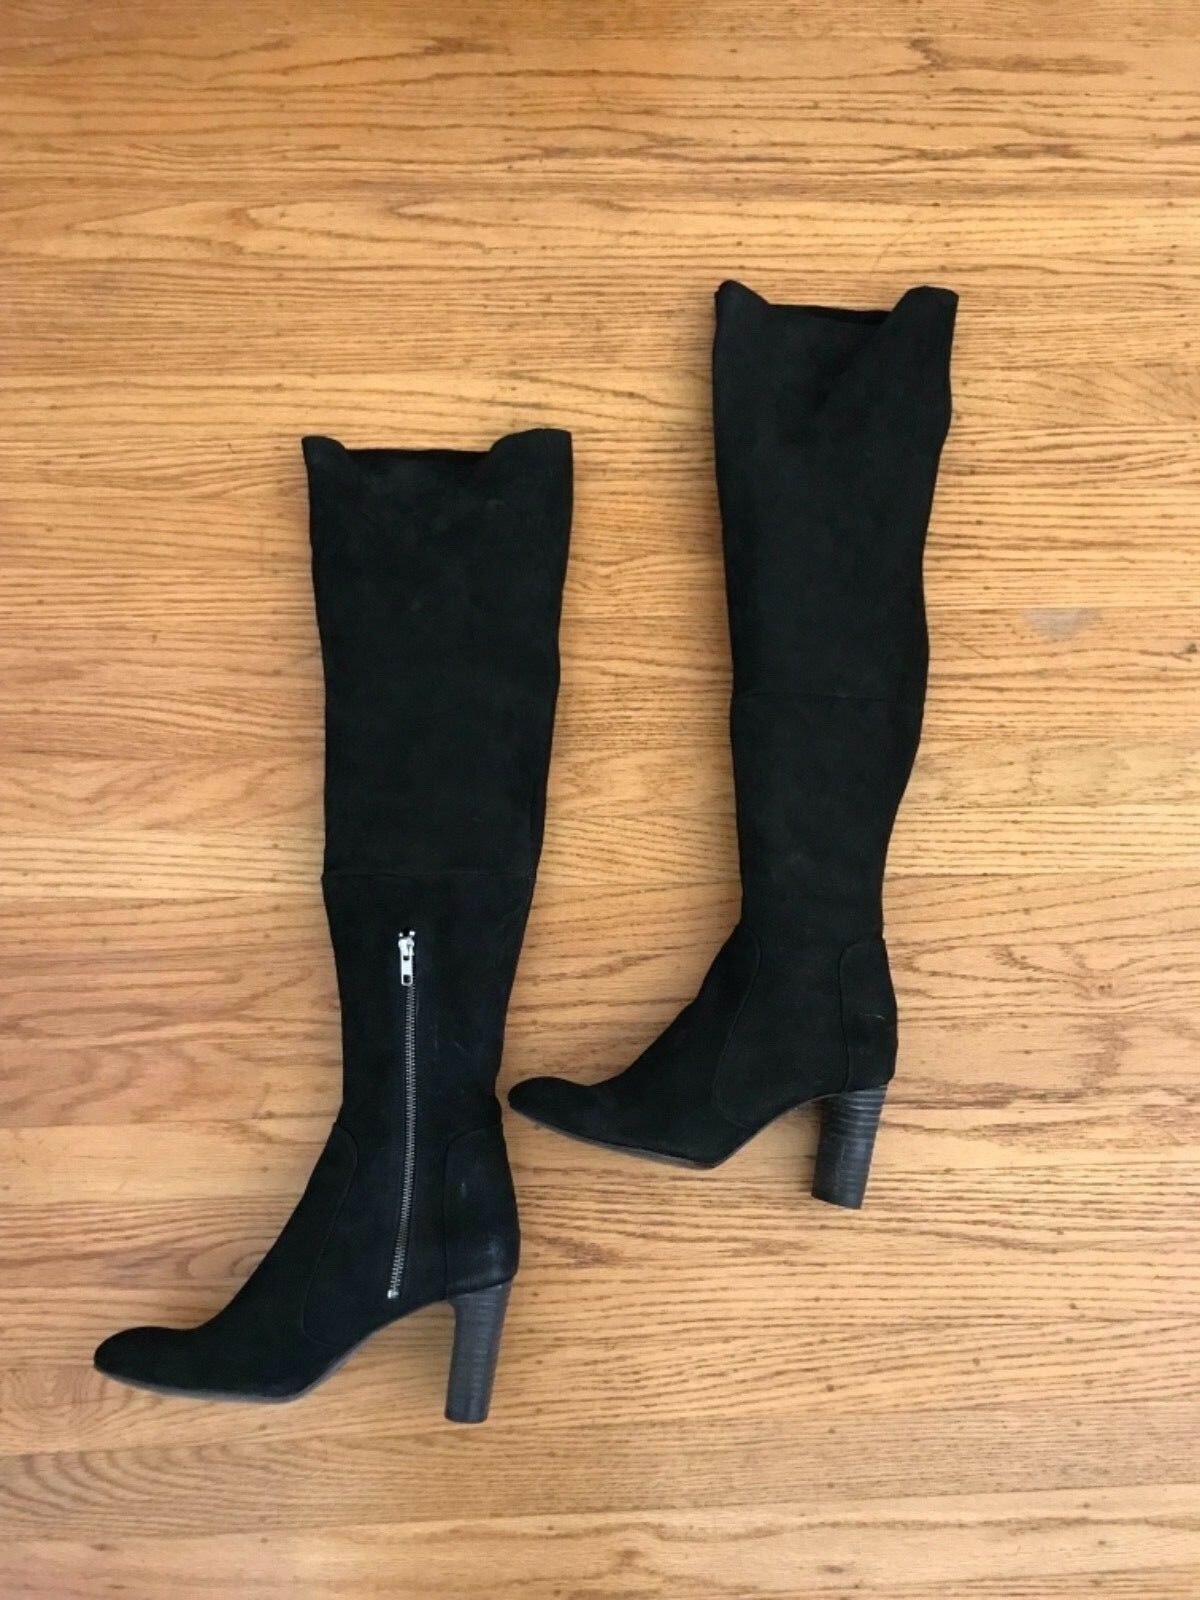 248 FREE PEOPLE Womens black nubuck Hight Tall boots 40 9.5